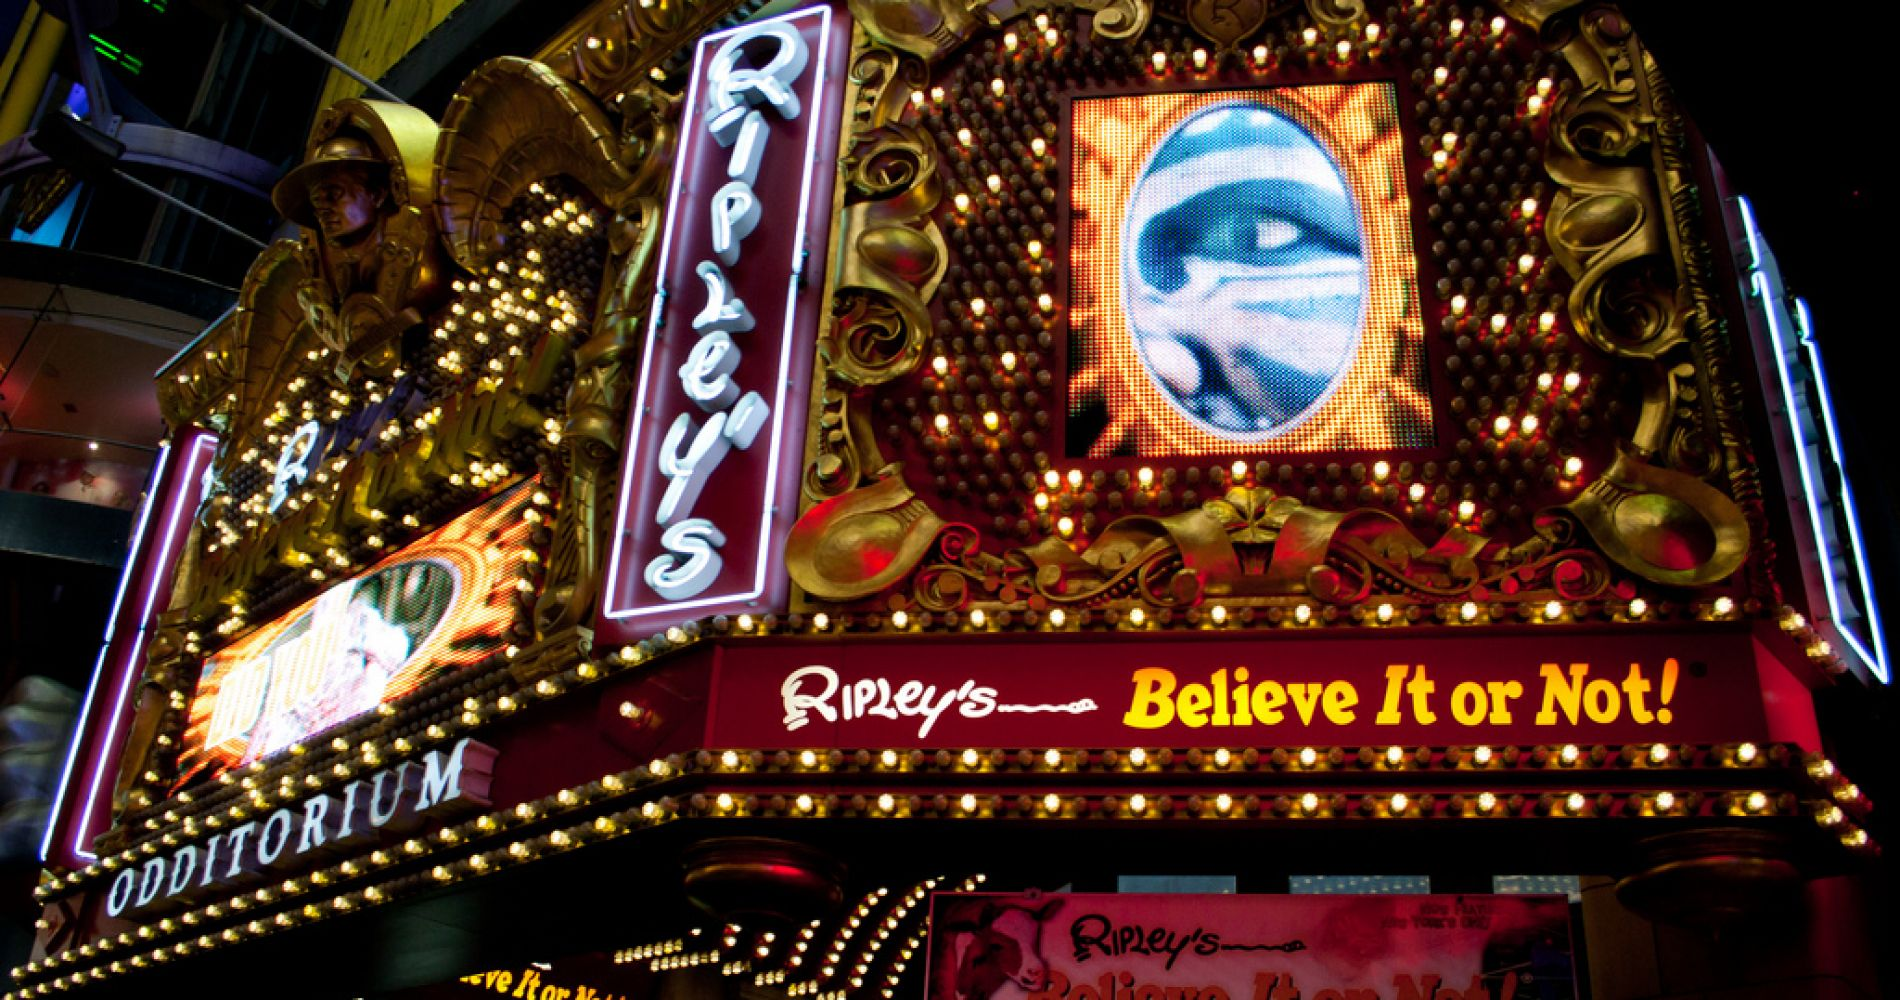 Ripley's Believe It or Not Experience Gift